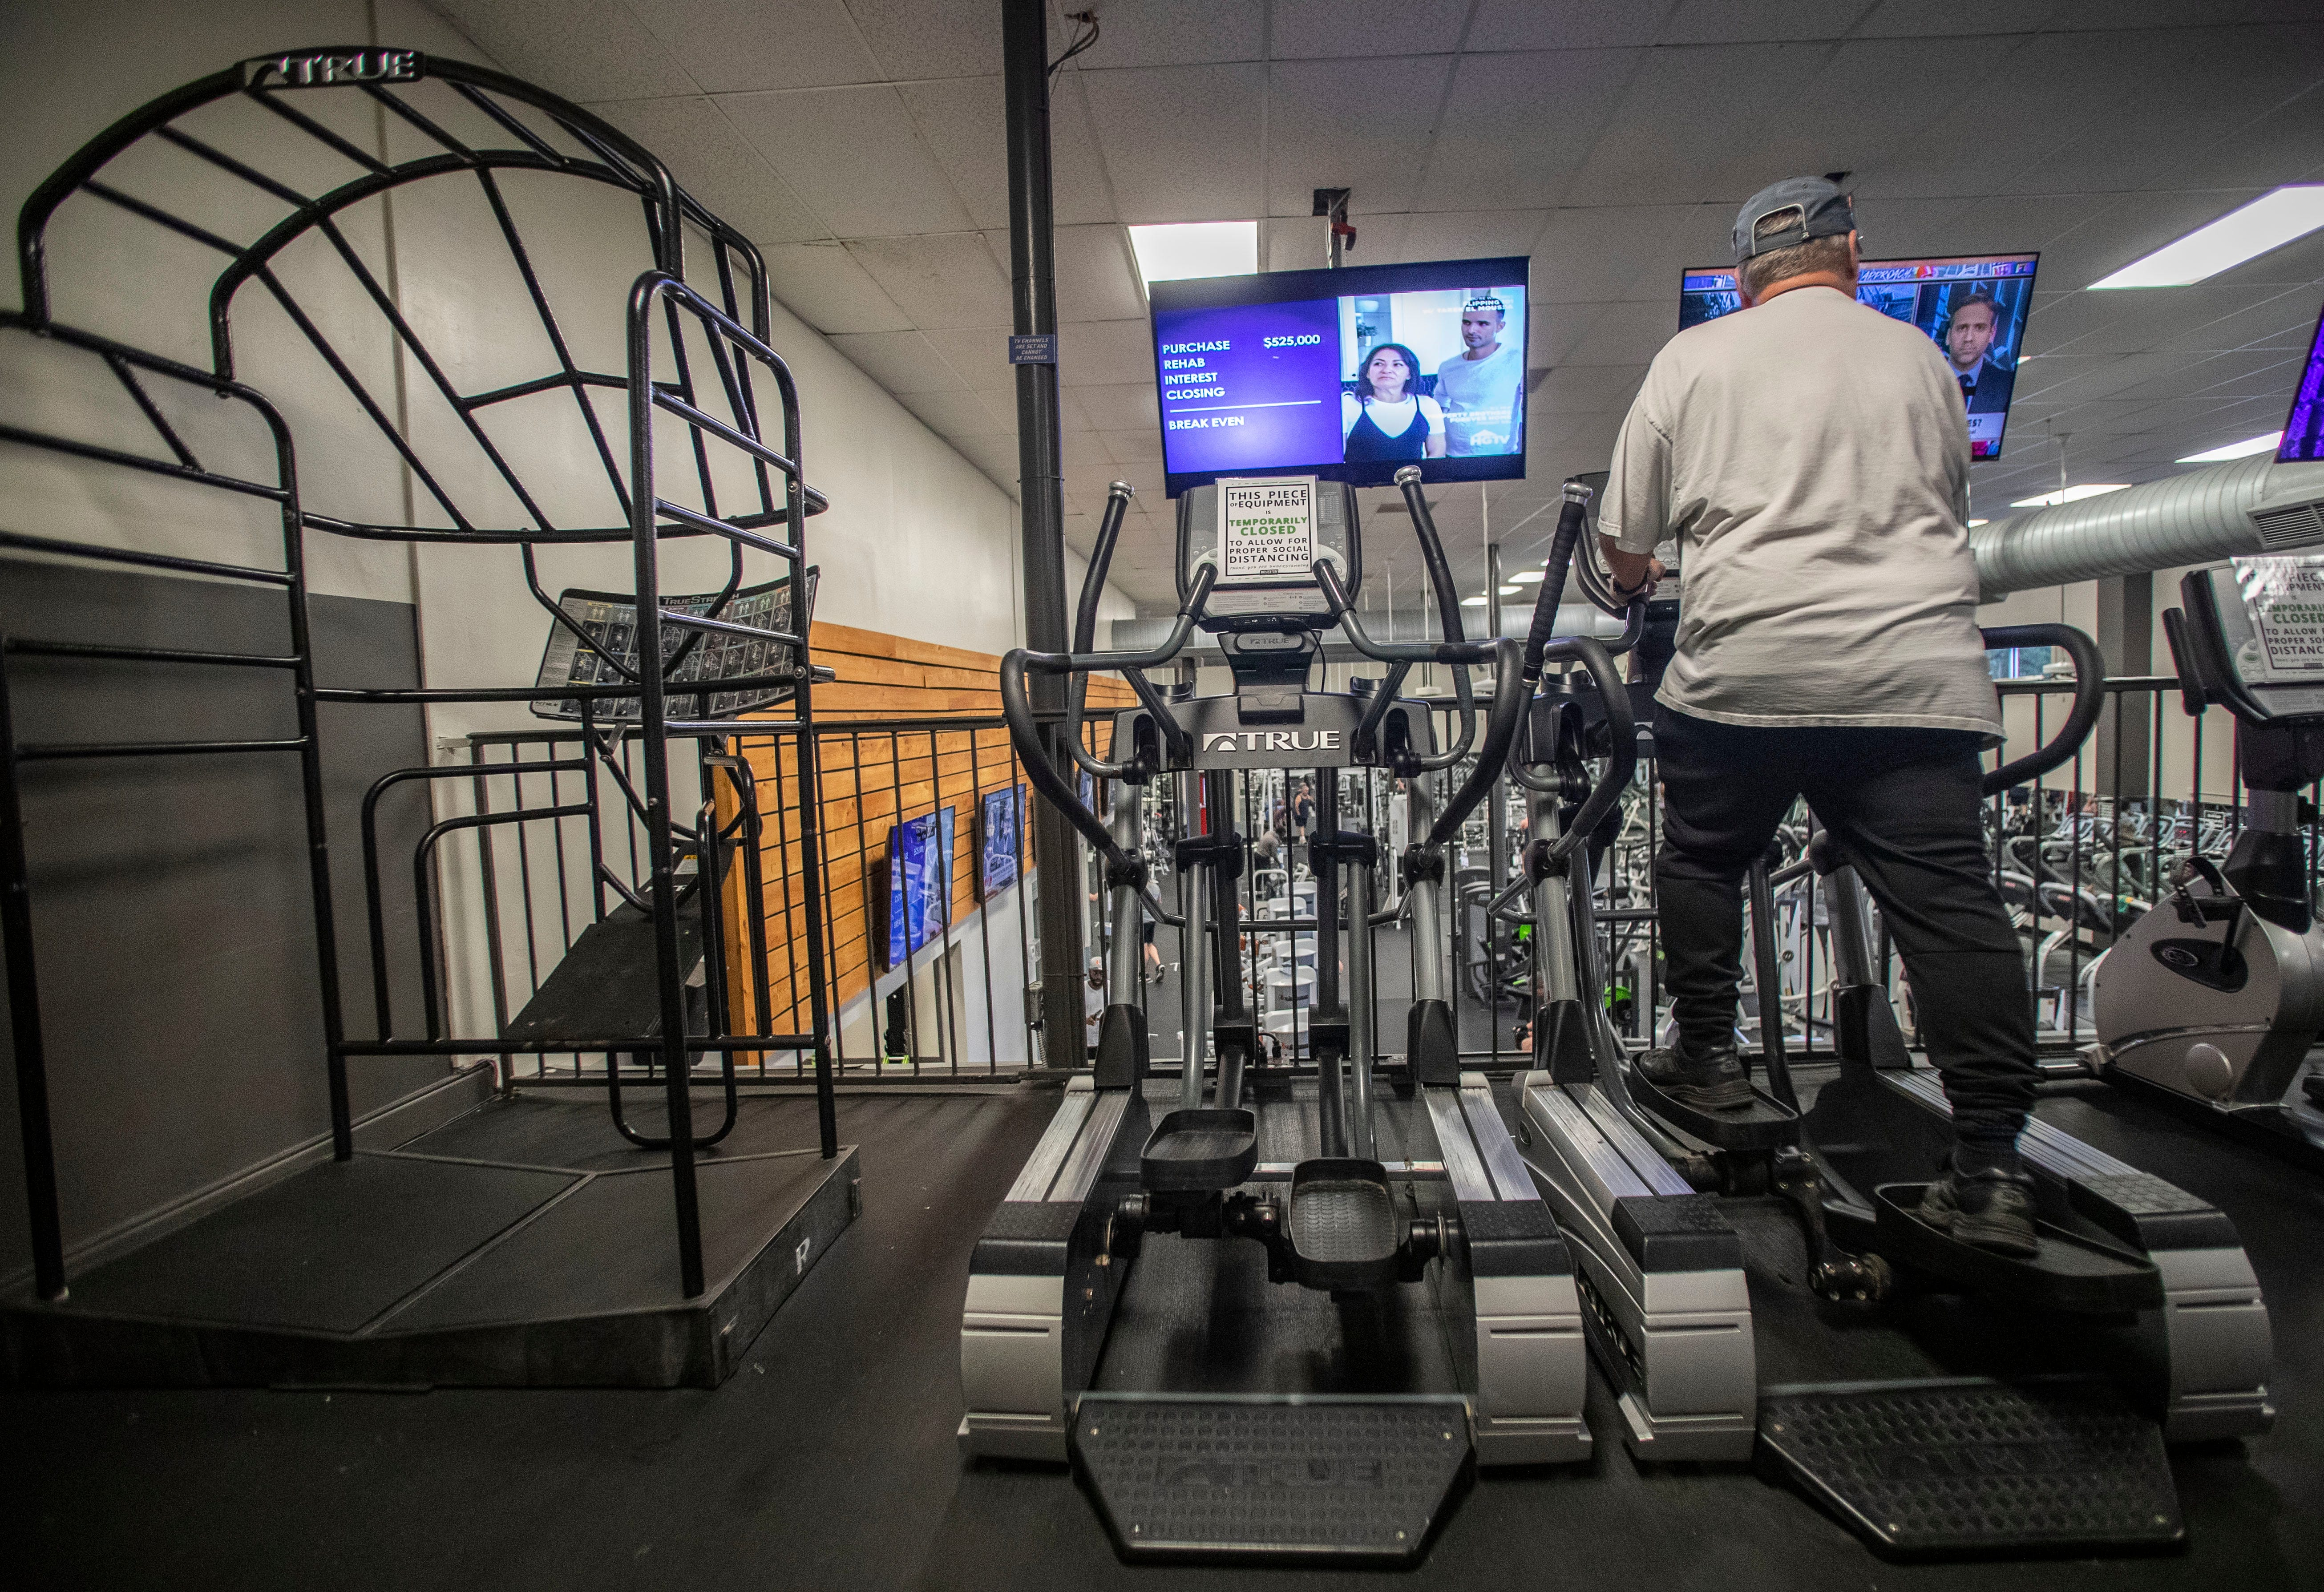 Tallahassee Gyms Reopen As Phase I Kicks In